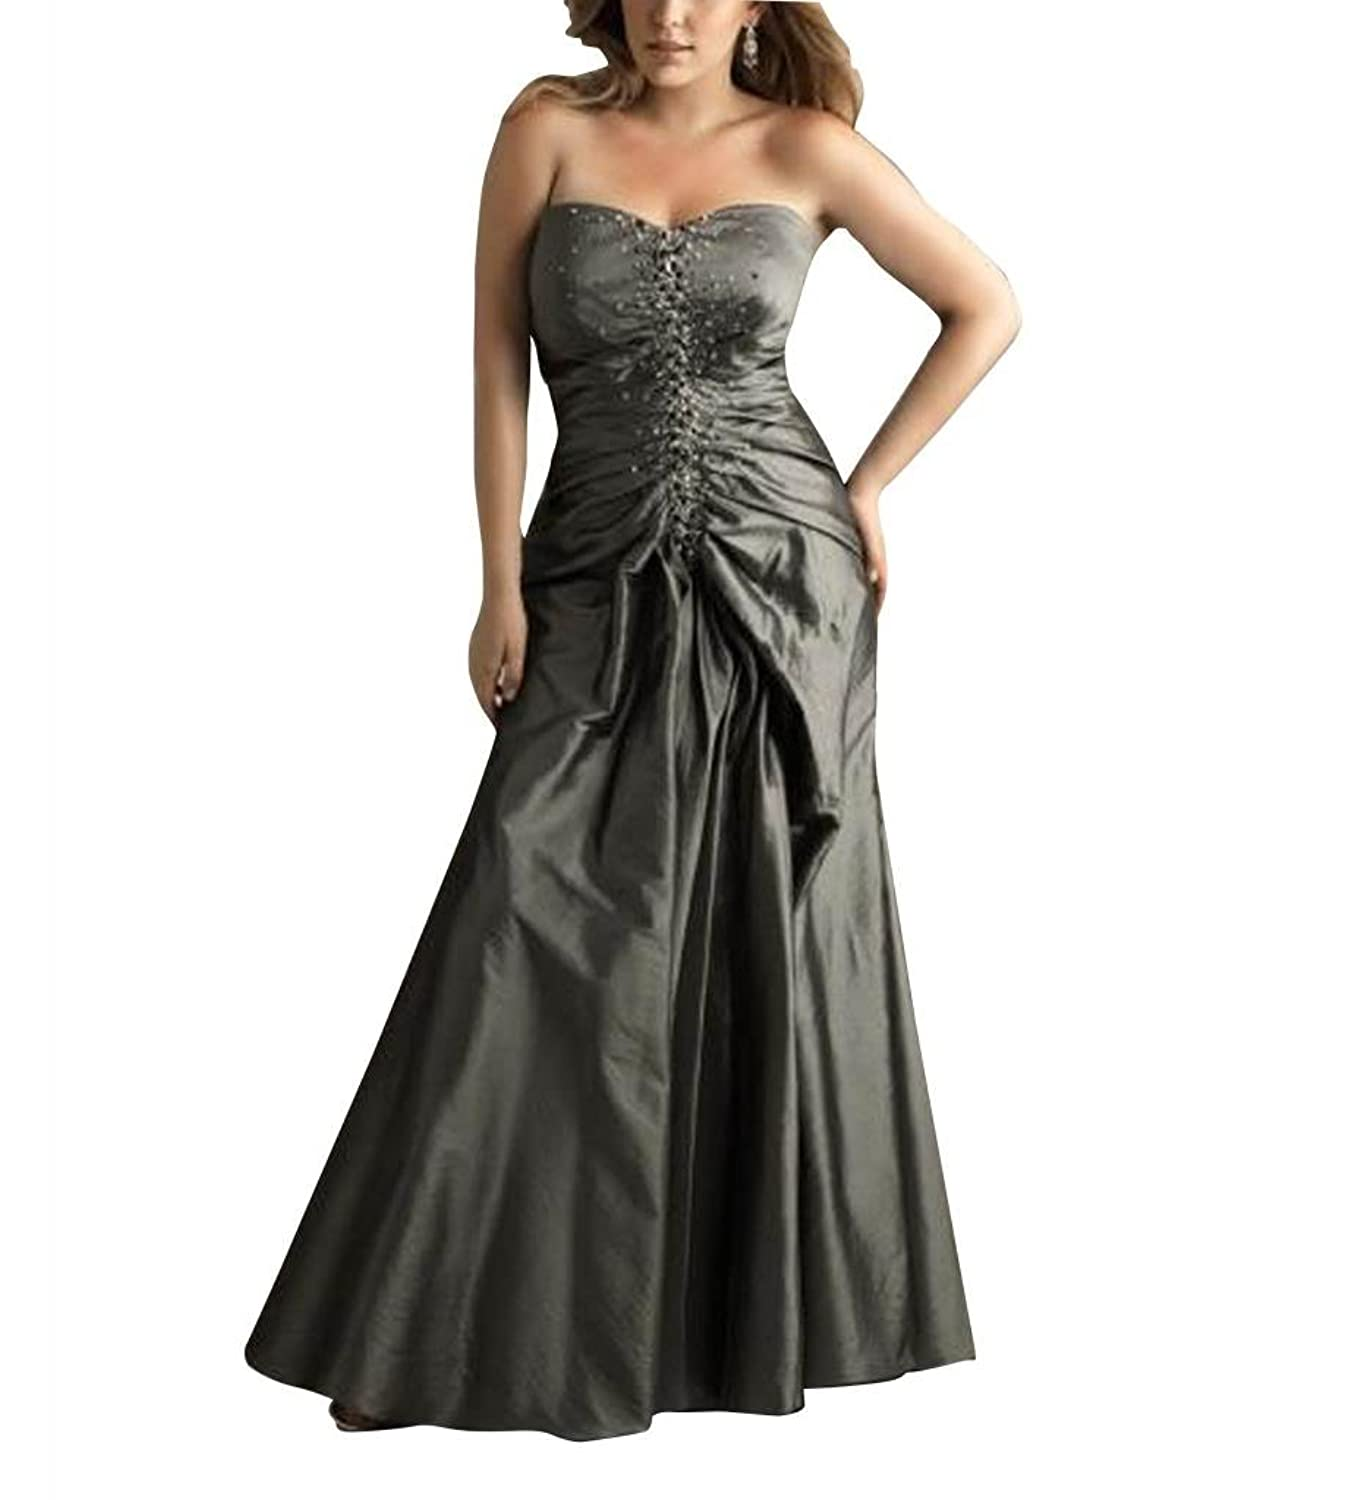 GEORGE BRIDE Grey Mother of The Bride Slight Sweetheart Floor Length Prom Dress With Beaded Appliques